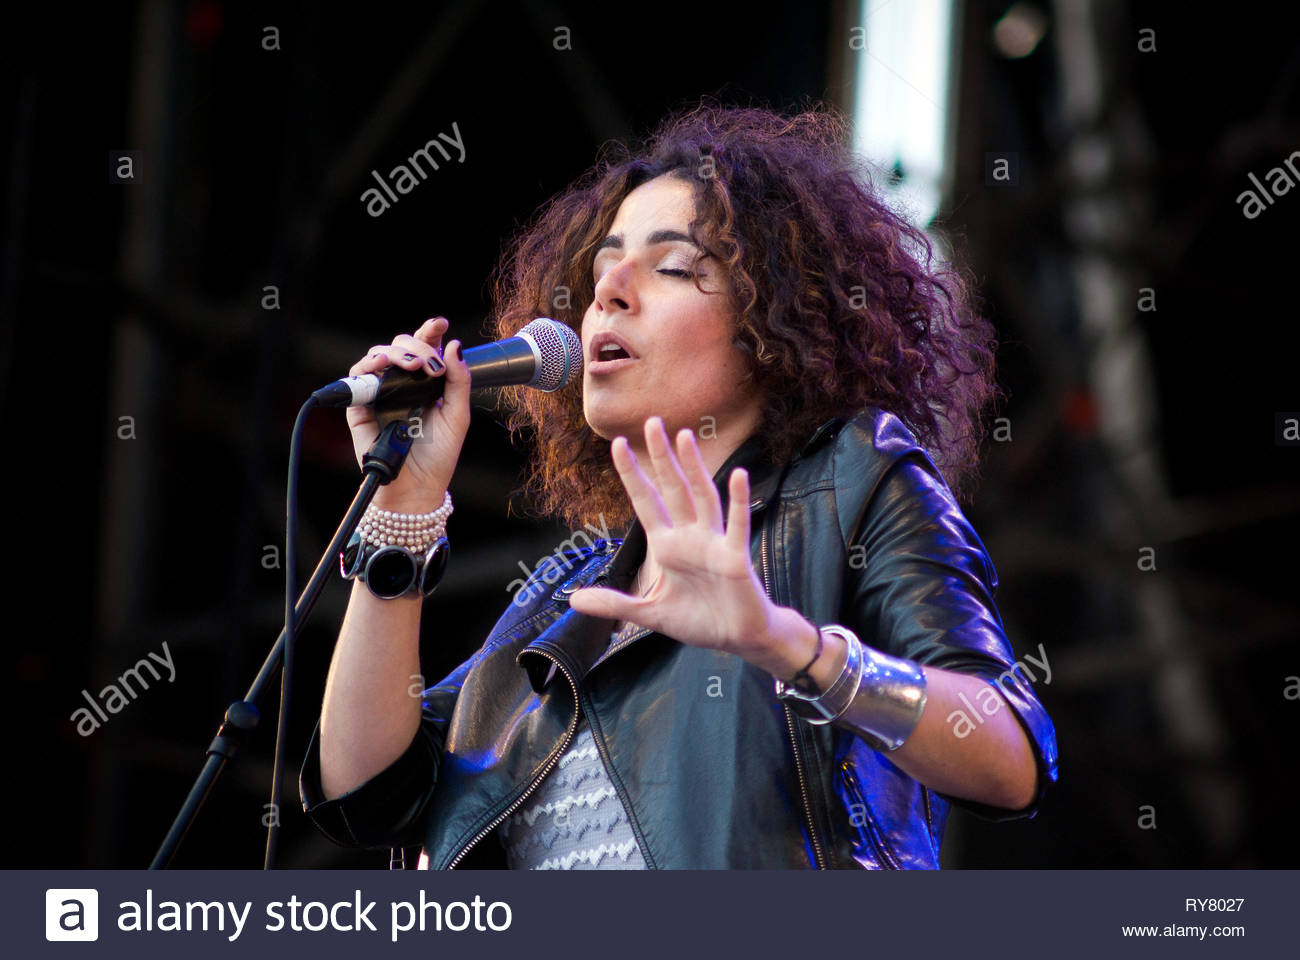 SOPHIE DELILA performing live at Musilac summer festival, 11 july 2009 Stock Photo